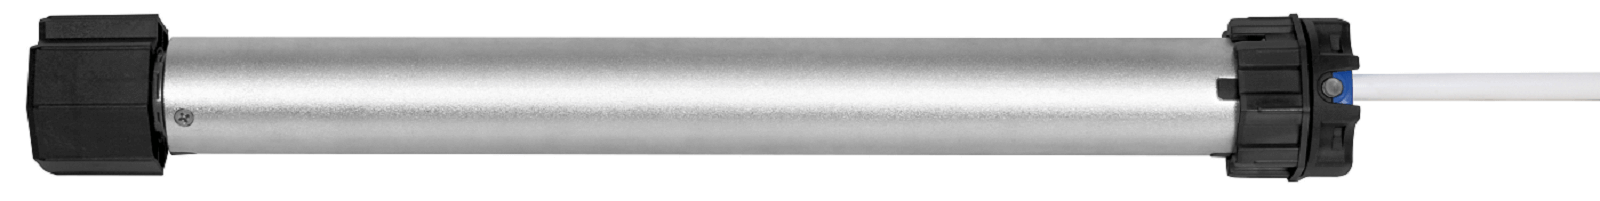 Rademacher Funk-Rohrmotor RolloTube Intelligent Small für 40 mm Welle DuoFern-Funk